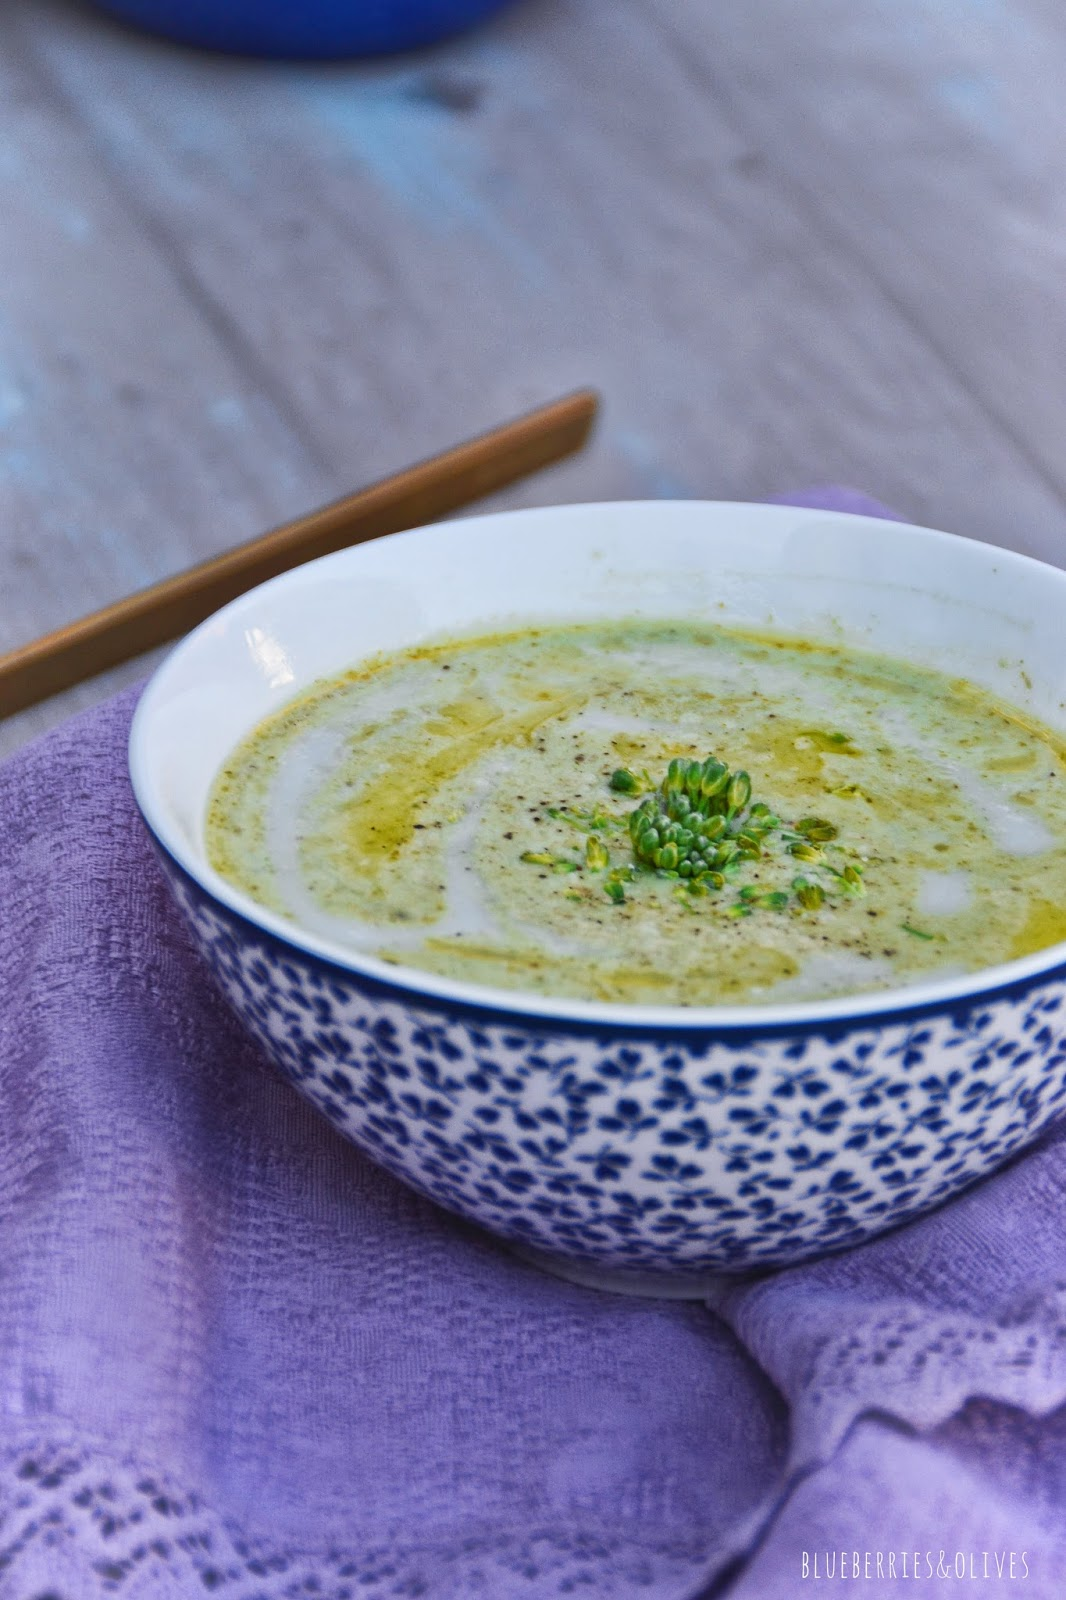 BROCCOLINI, ALMOND AND ROSEMARY CHILLED SOUP